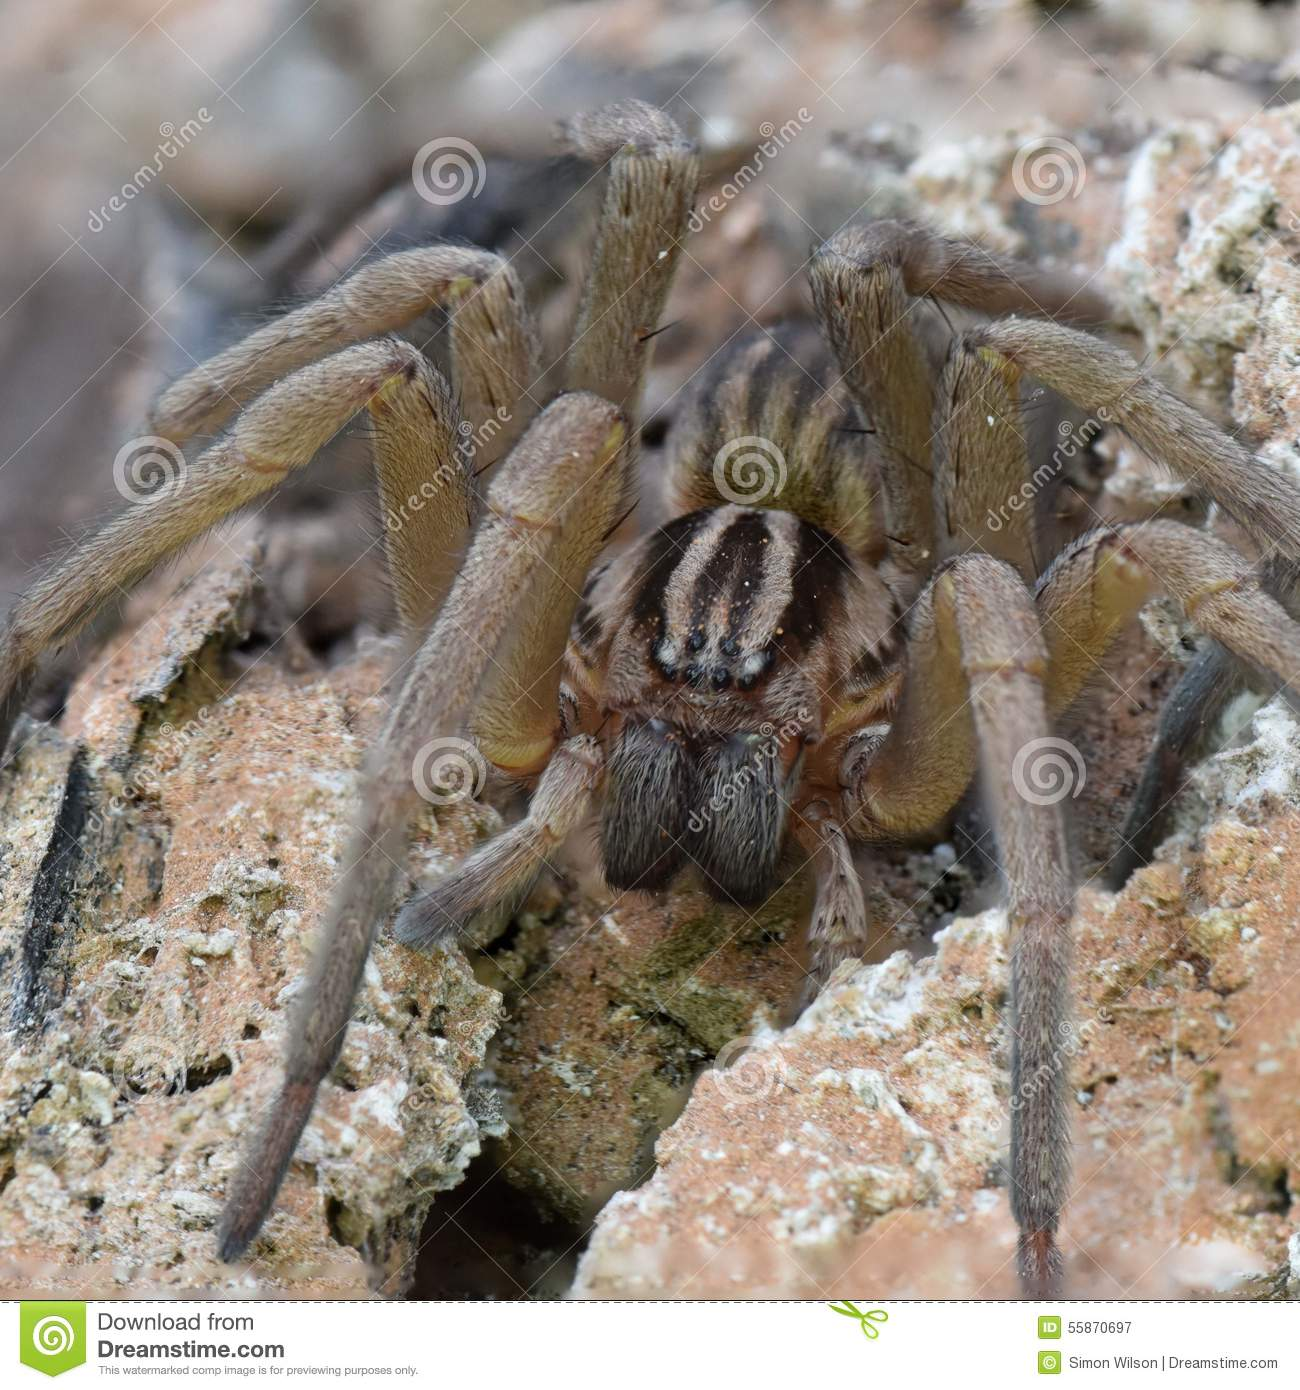 Large Huntsman Spider Stock Photo 55870697 - Megapixl